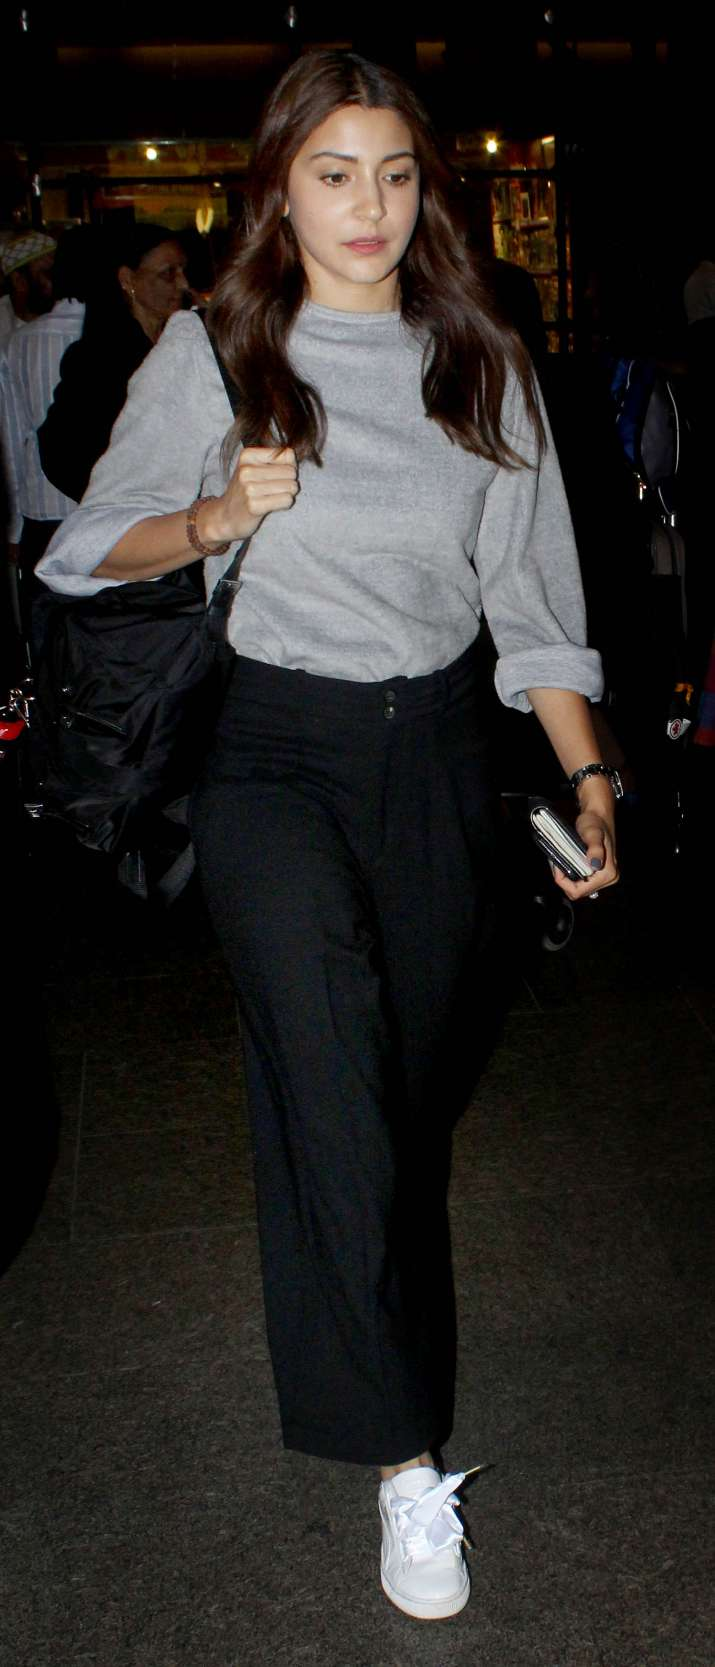 India Tv - The lady returned to Mumbai on Tuesday and was captured by the paparazzi at the airport.